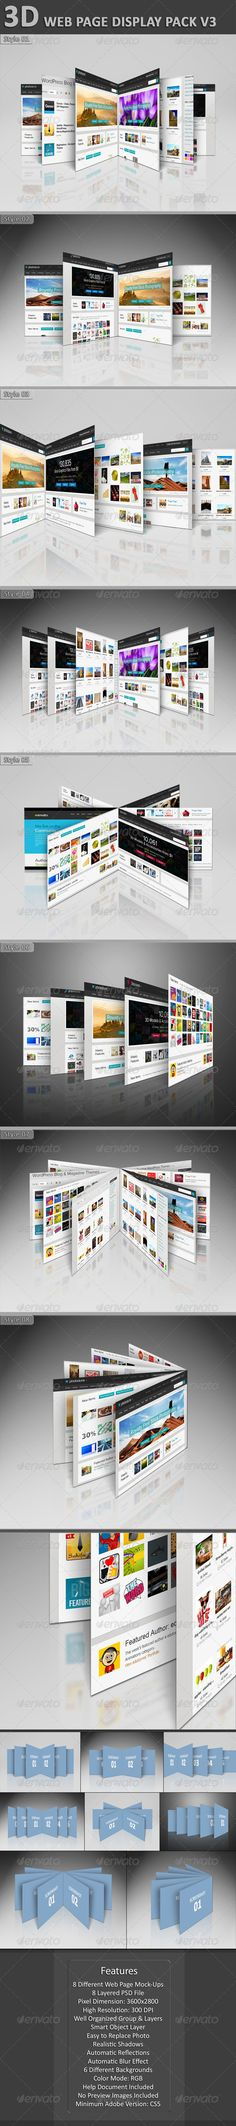 3D Web Page Display Pack V3: The pack includes 8 different web page display mock-ups. 8 PSD file is included in the package. Adob